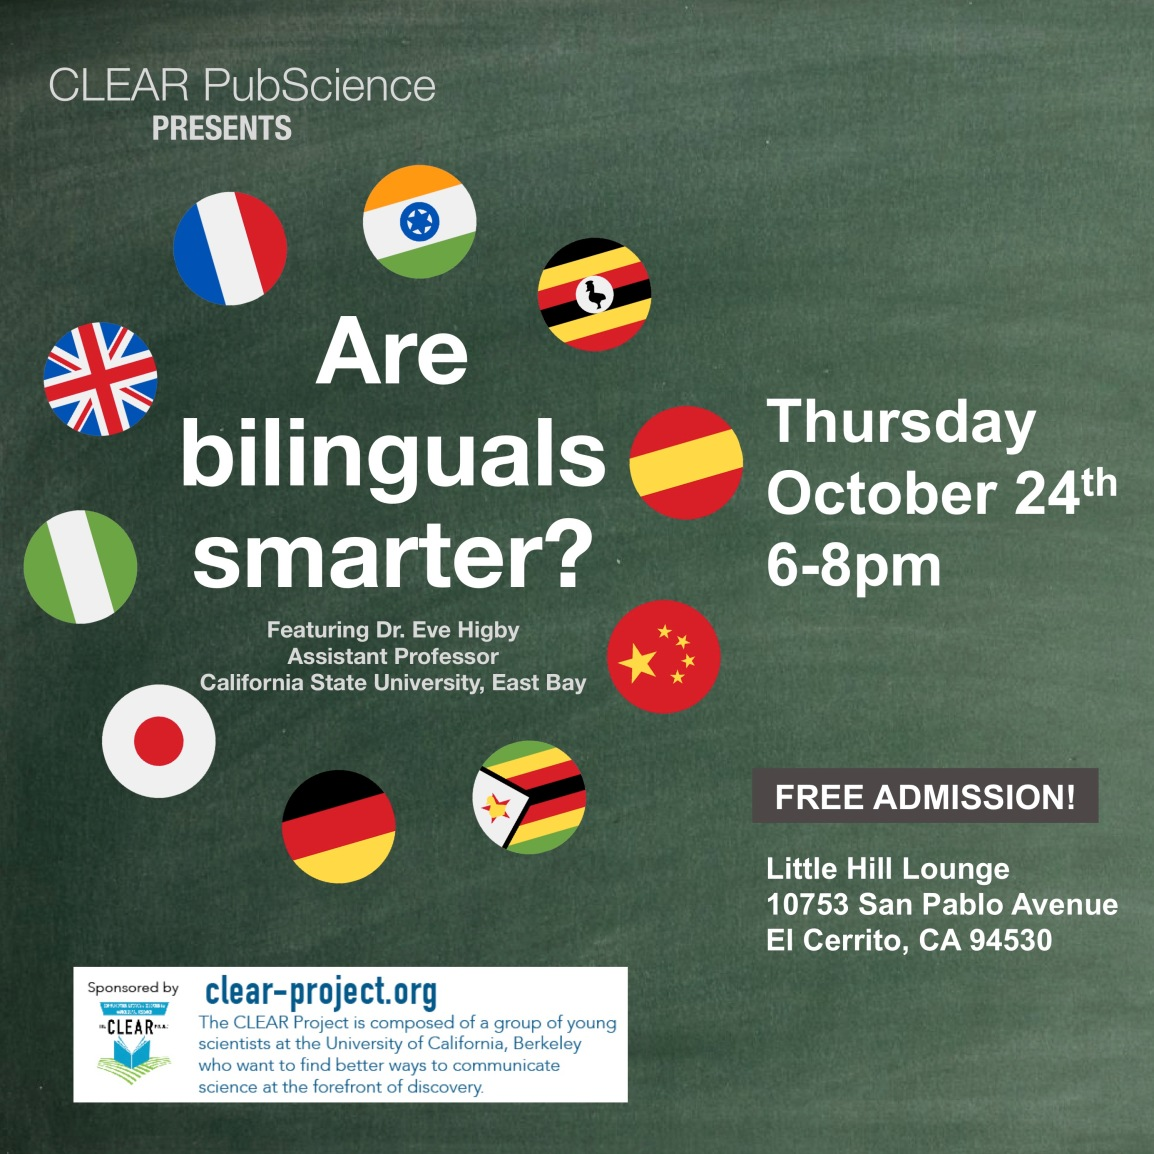 Are bilinguals smarter?